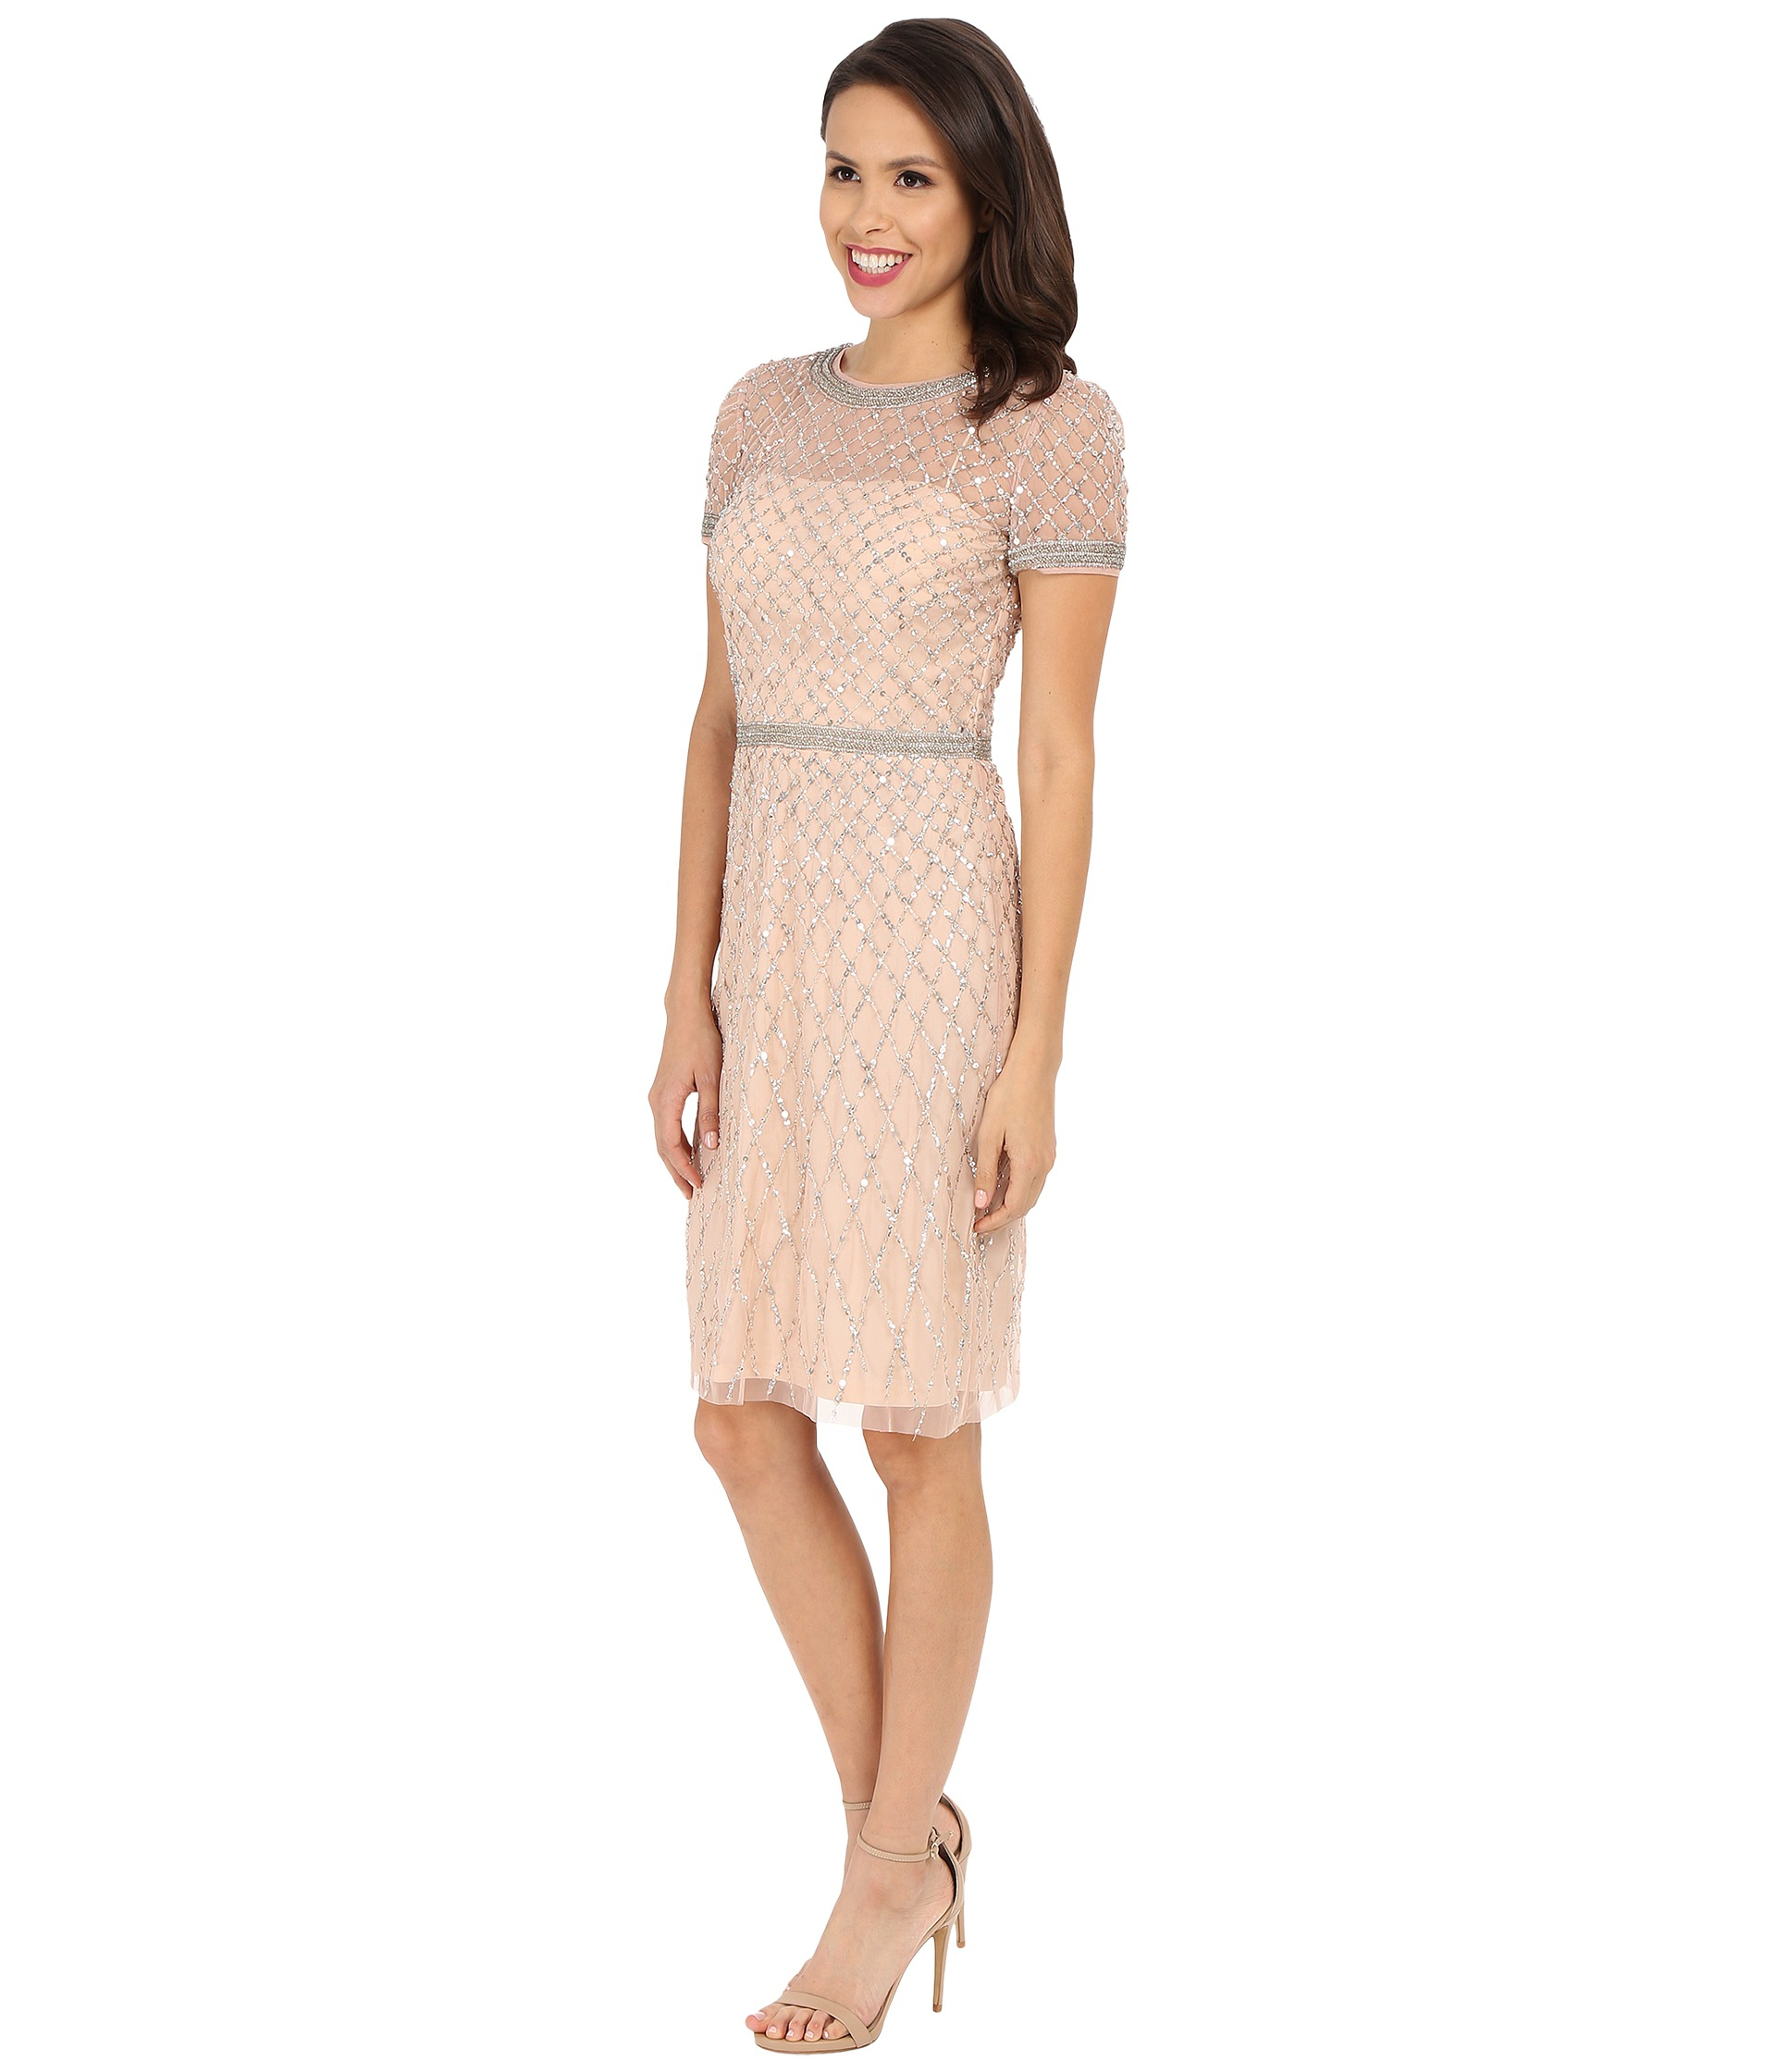 f7fe38b5cf3 Lyst - Adrianna Papell Short Sleeve Fully Beaded Cocktail Dress in Pink